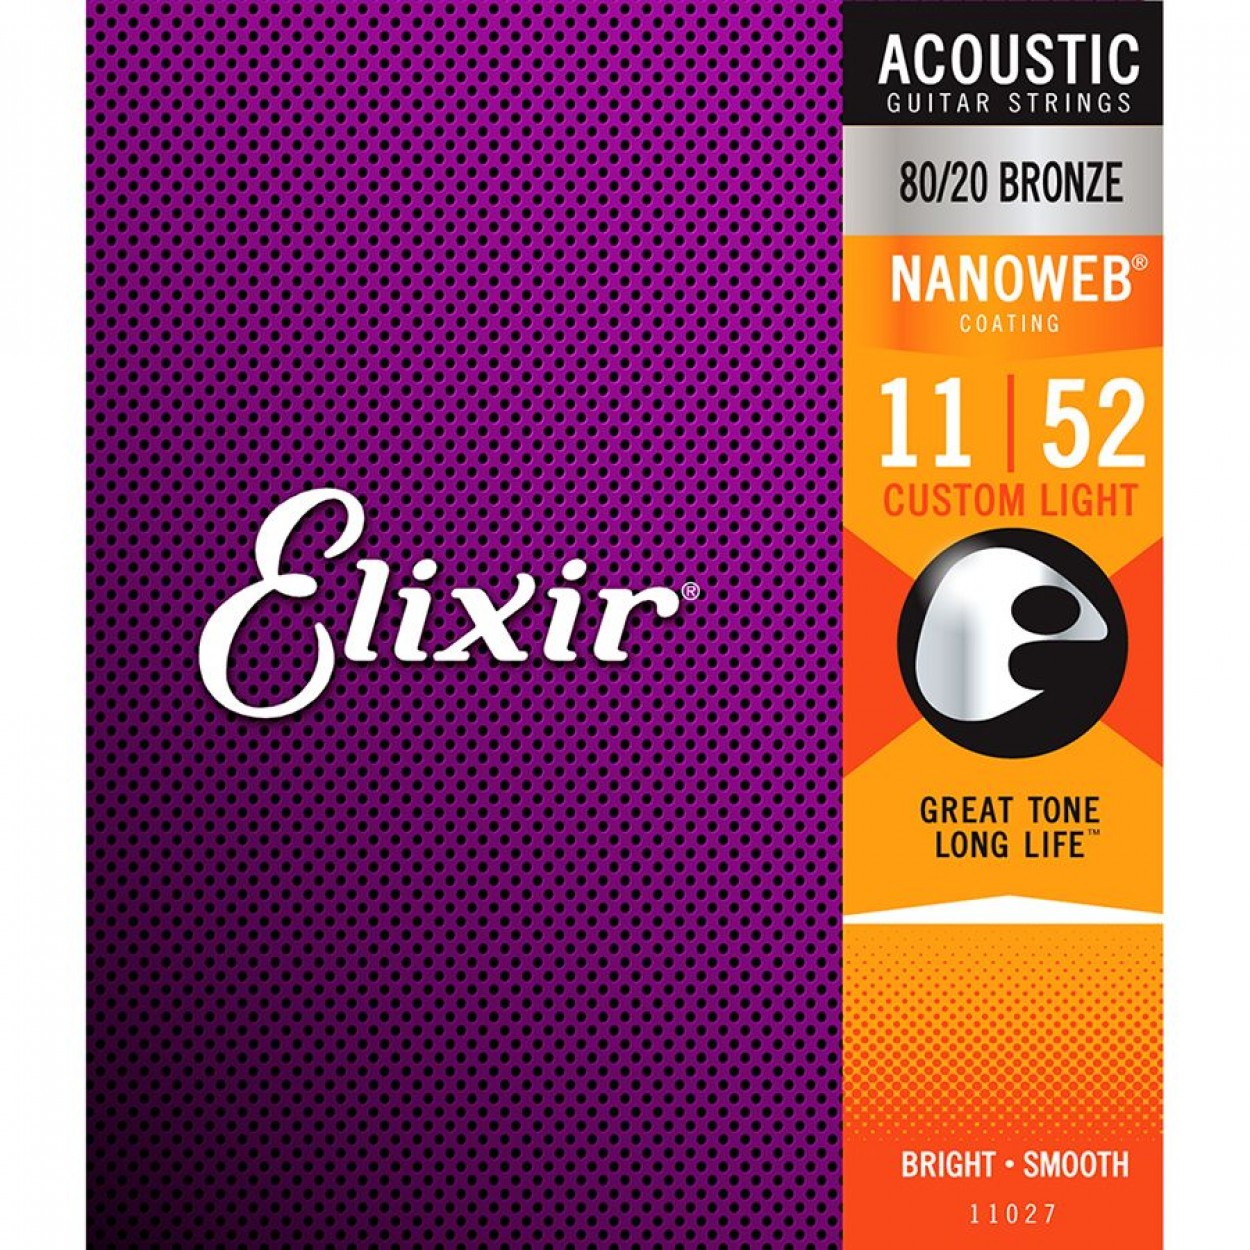 Elixir Acoustic Guitar Strings Nanoweb Custom Light 11-52